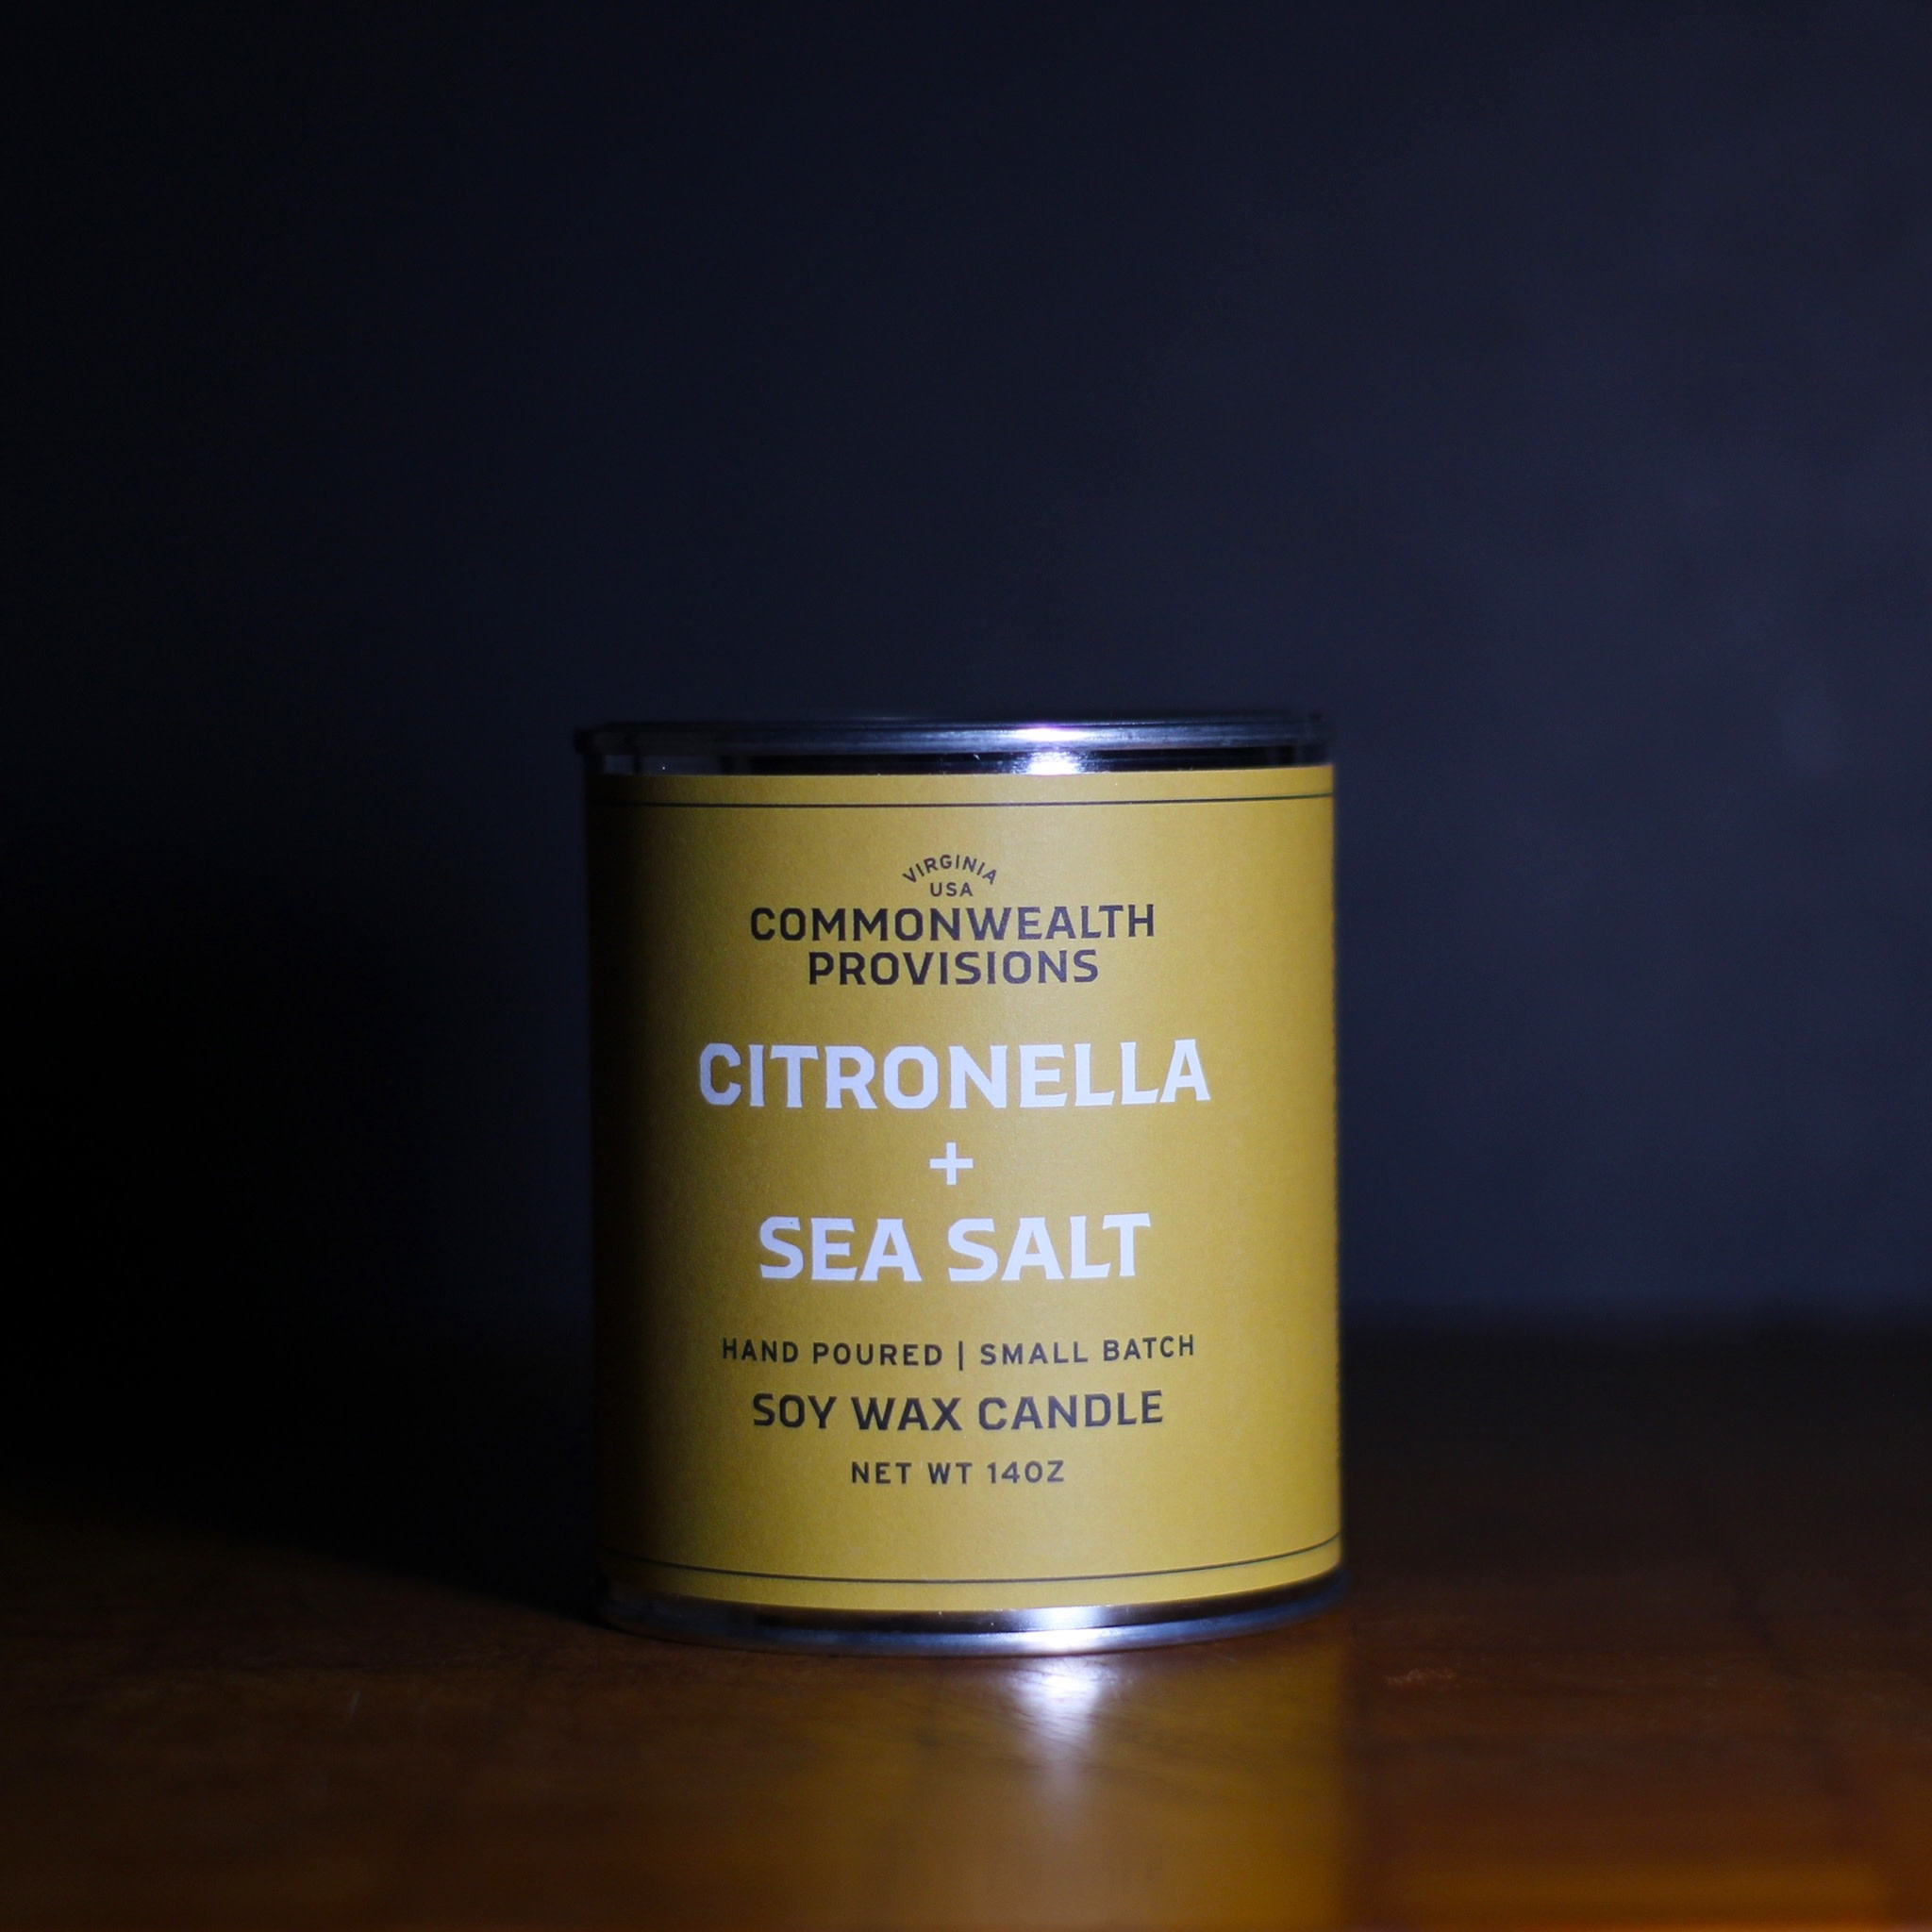 Commonwealth Provisions Citronella & Sea Salt Candle